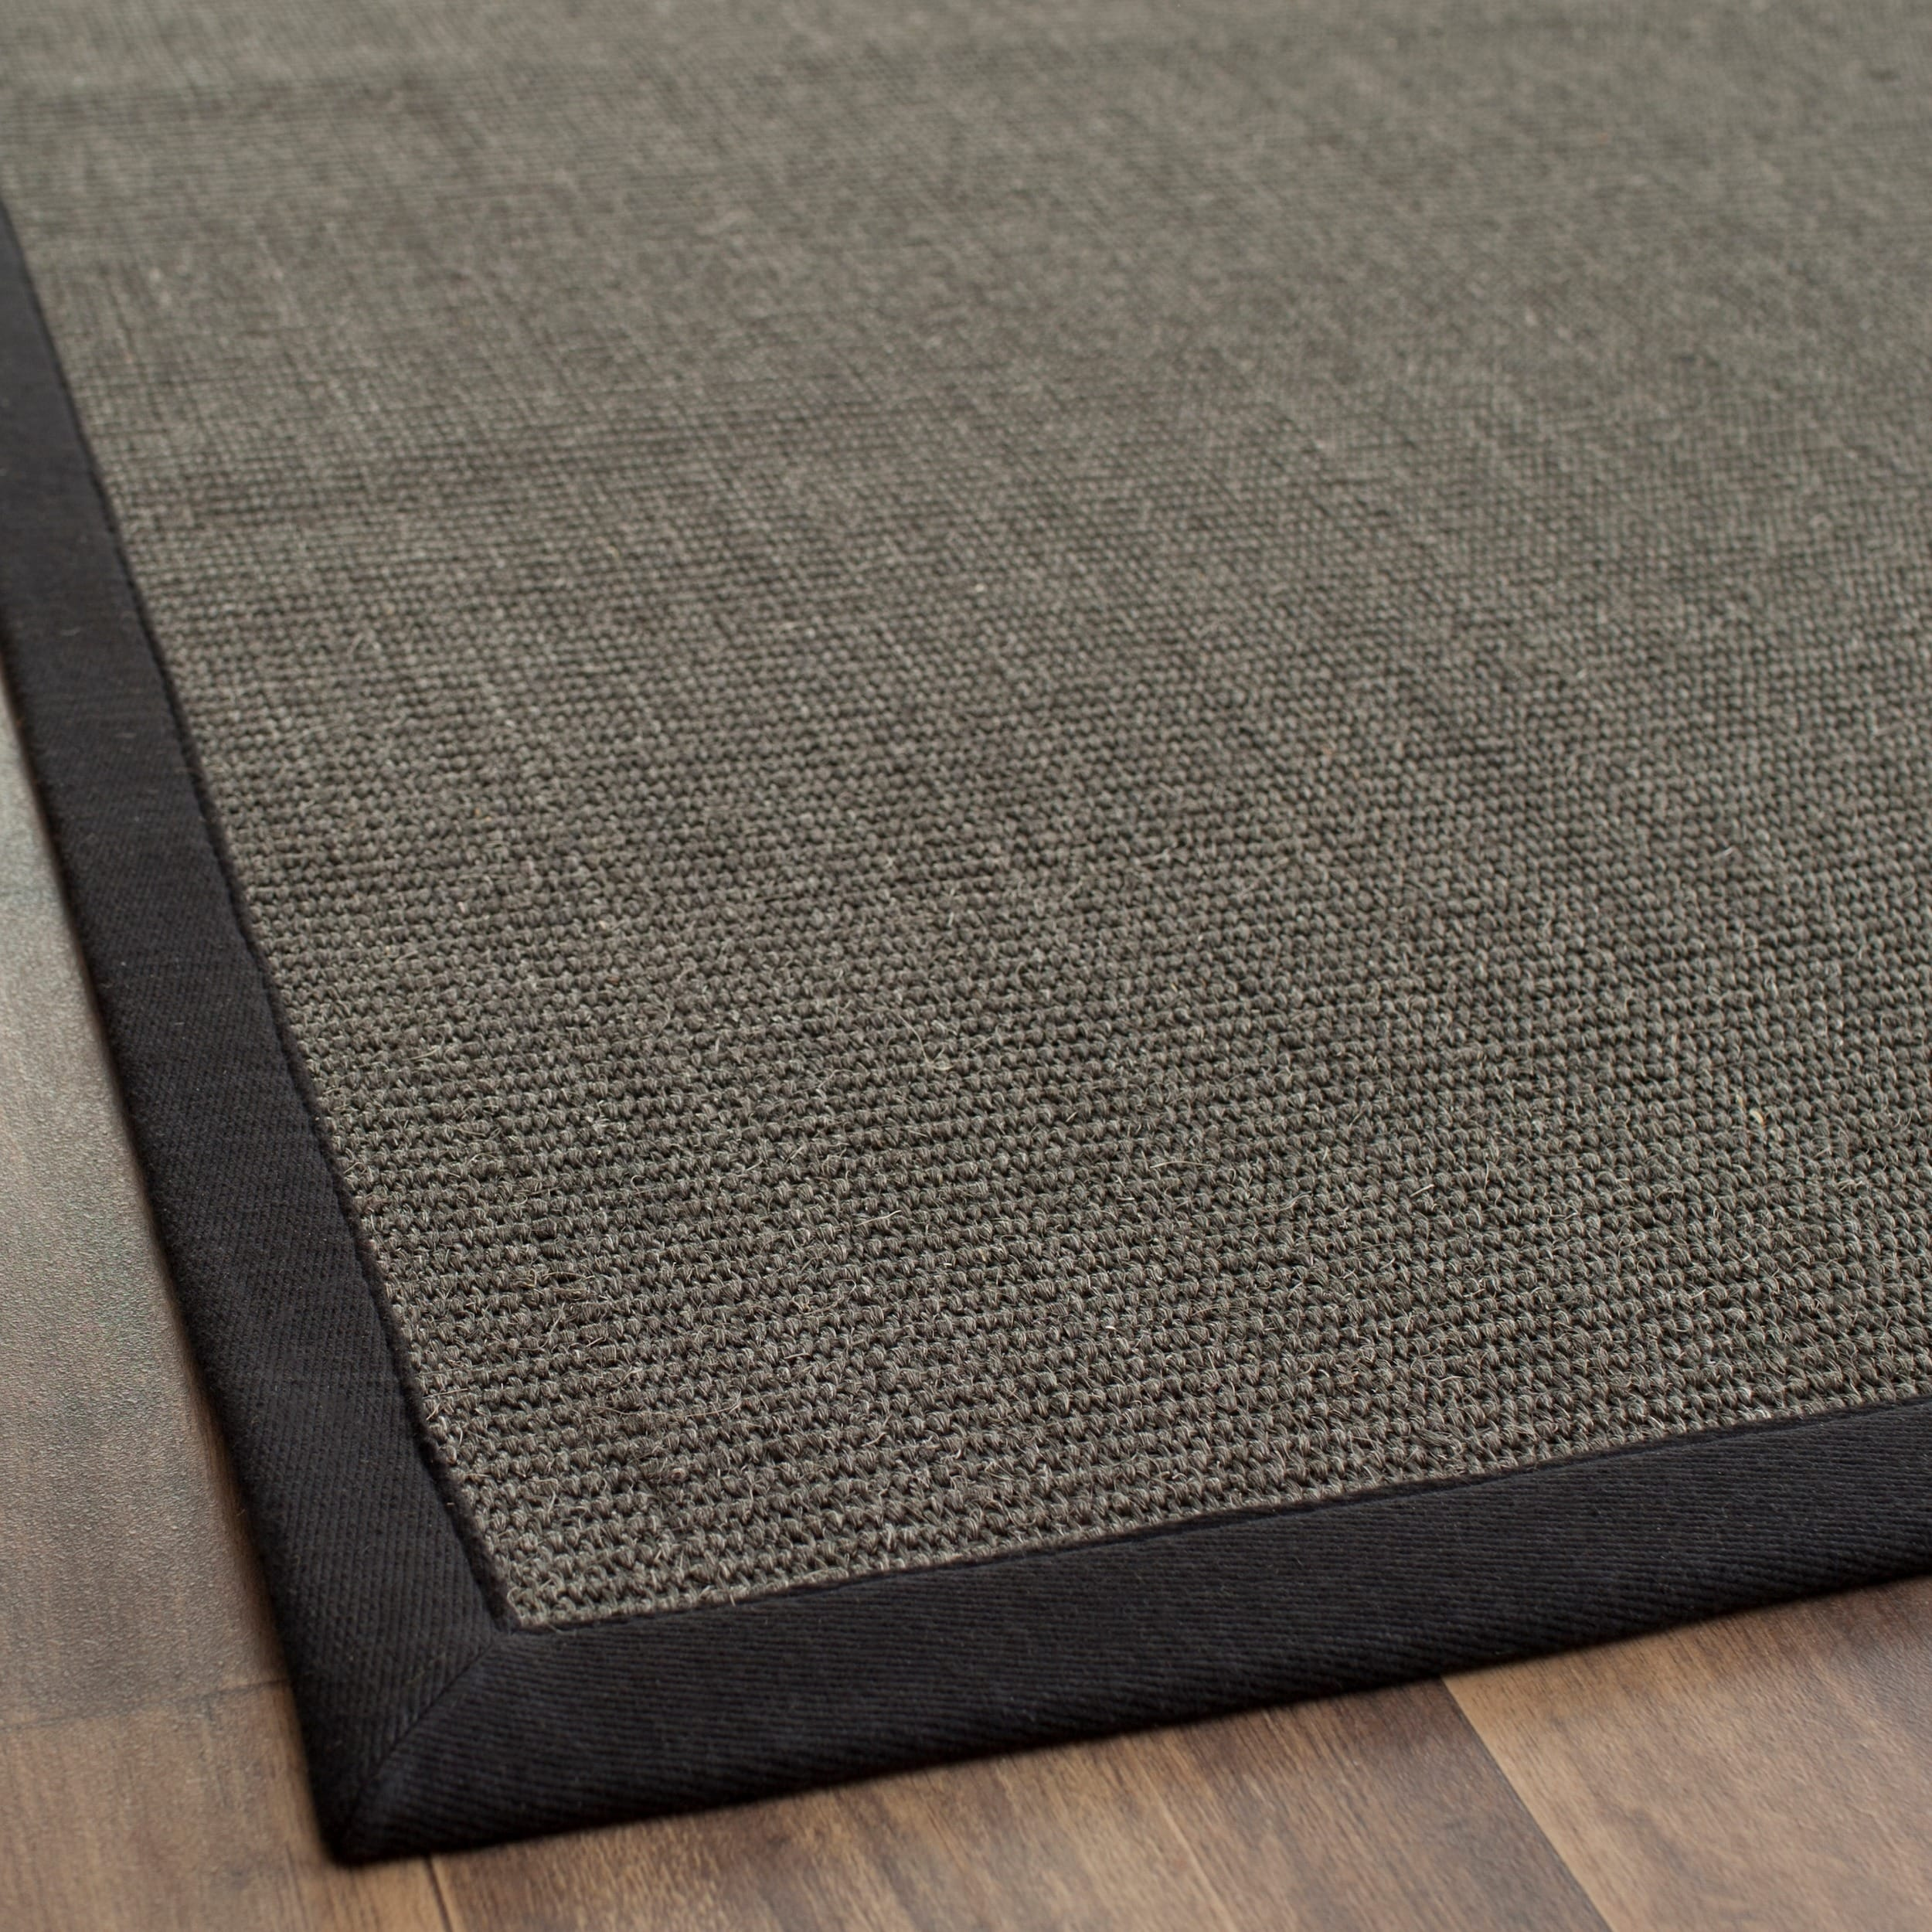 mats pictures door durable detail a mat uk fibers rug nationwide is natural custom rugs are made sisal from what logo and with carpet